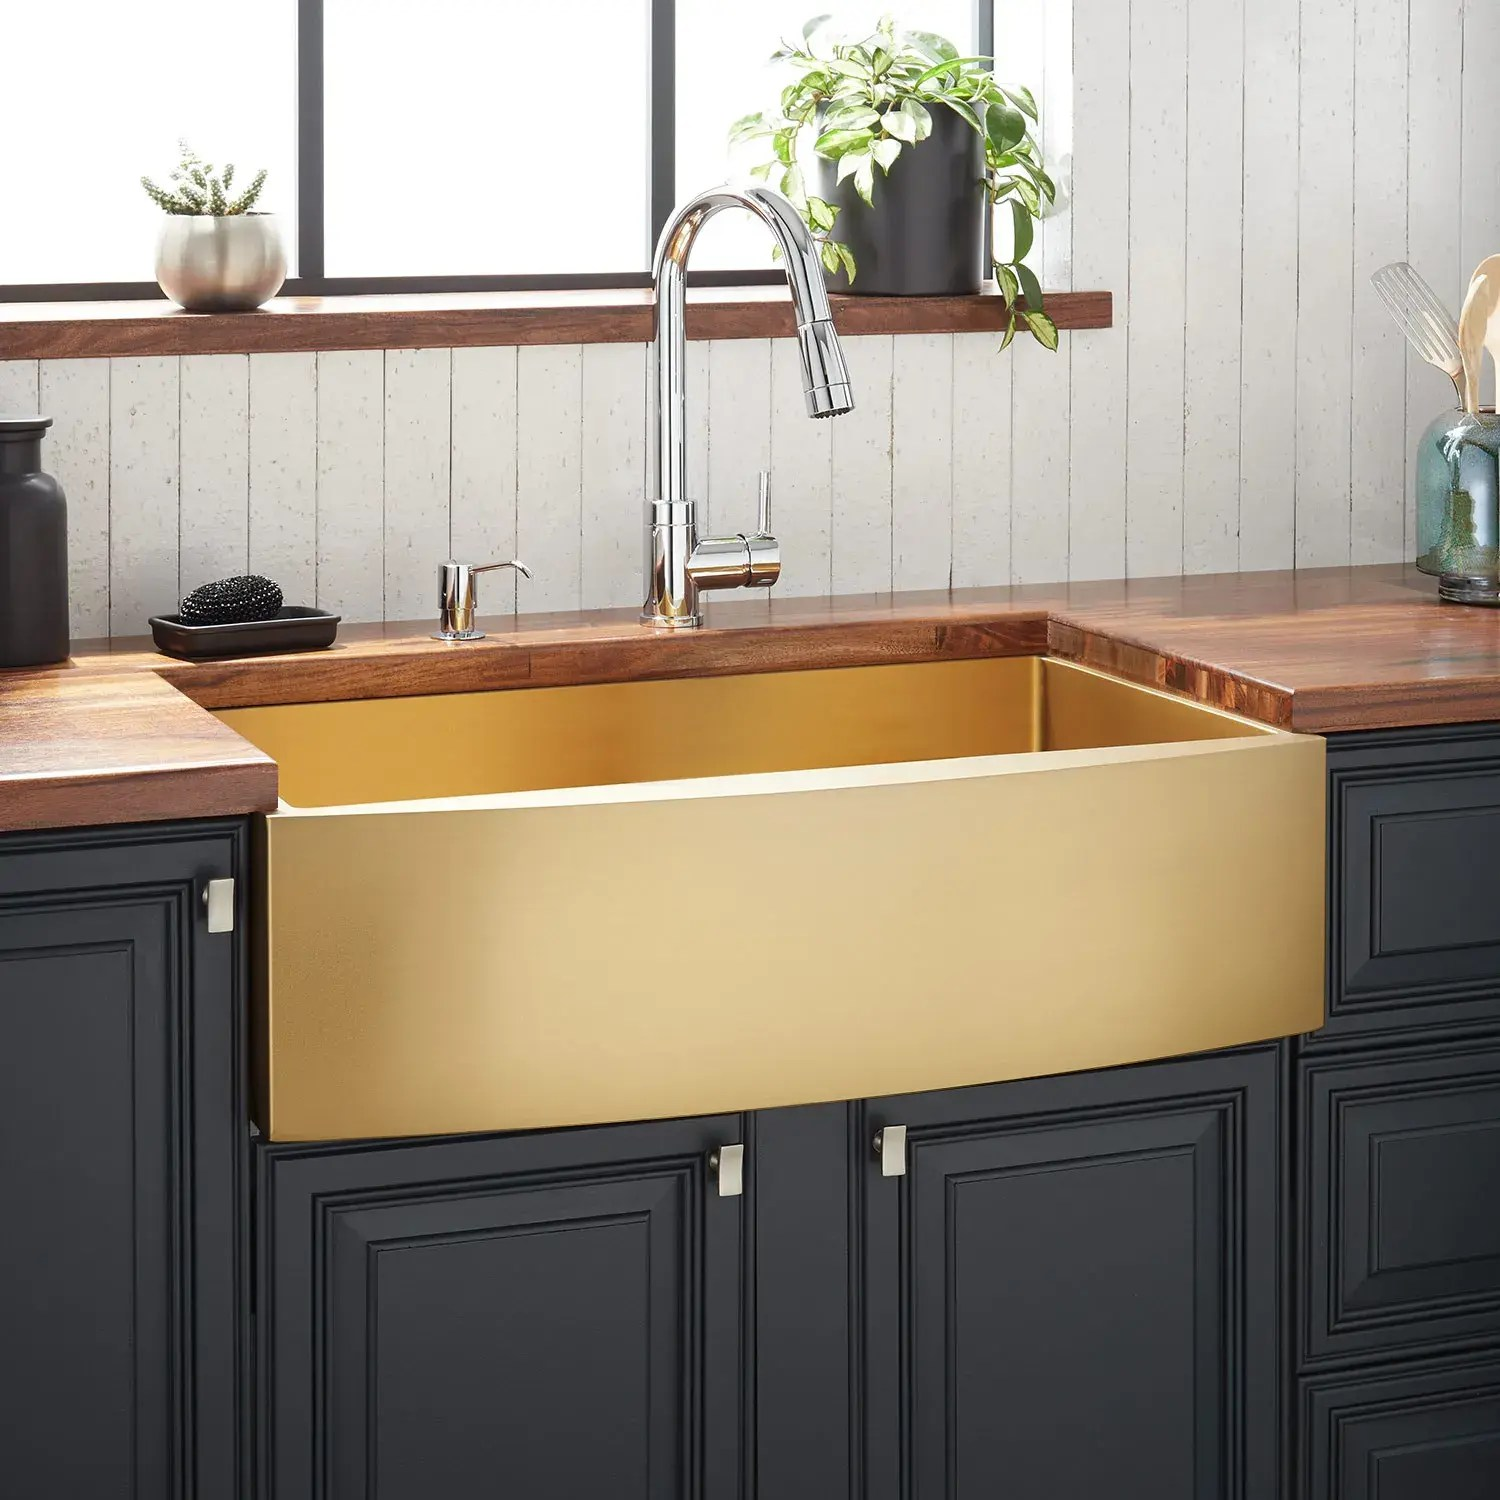 Https Www Signaturehardware Com 33 Atlas Stainless Steel Farmhouse Sink Curved Apron Matte Gold Html